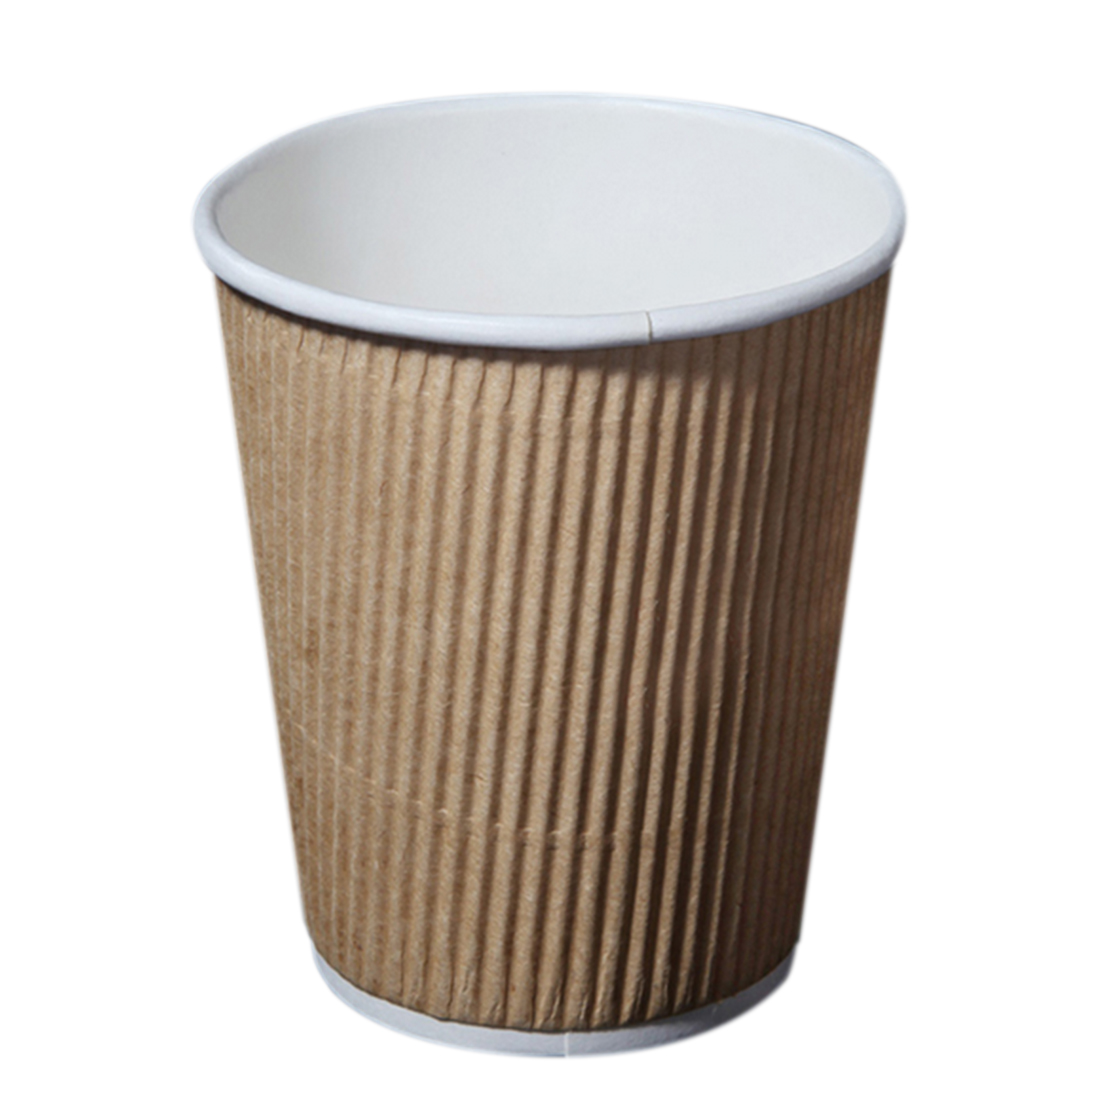 Staggering Paper Coffee Cup Paper Coffee Cup Metal Wall Coffee Cups Glass Metal Coffee Cups furniture Metal Coffee Cups